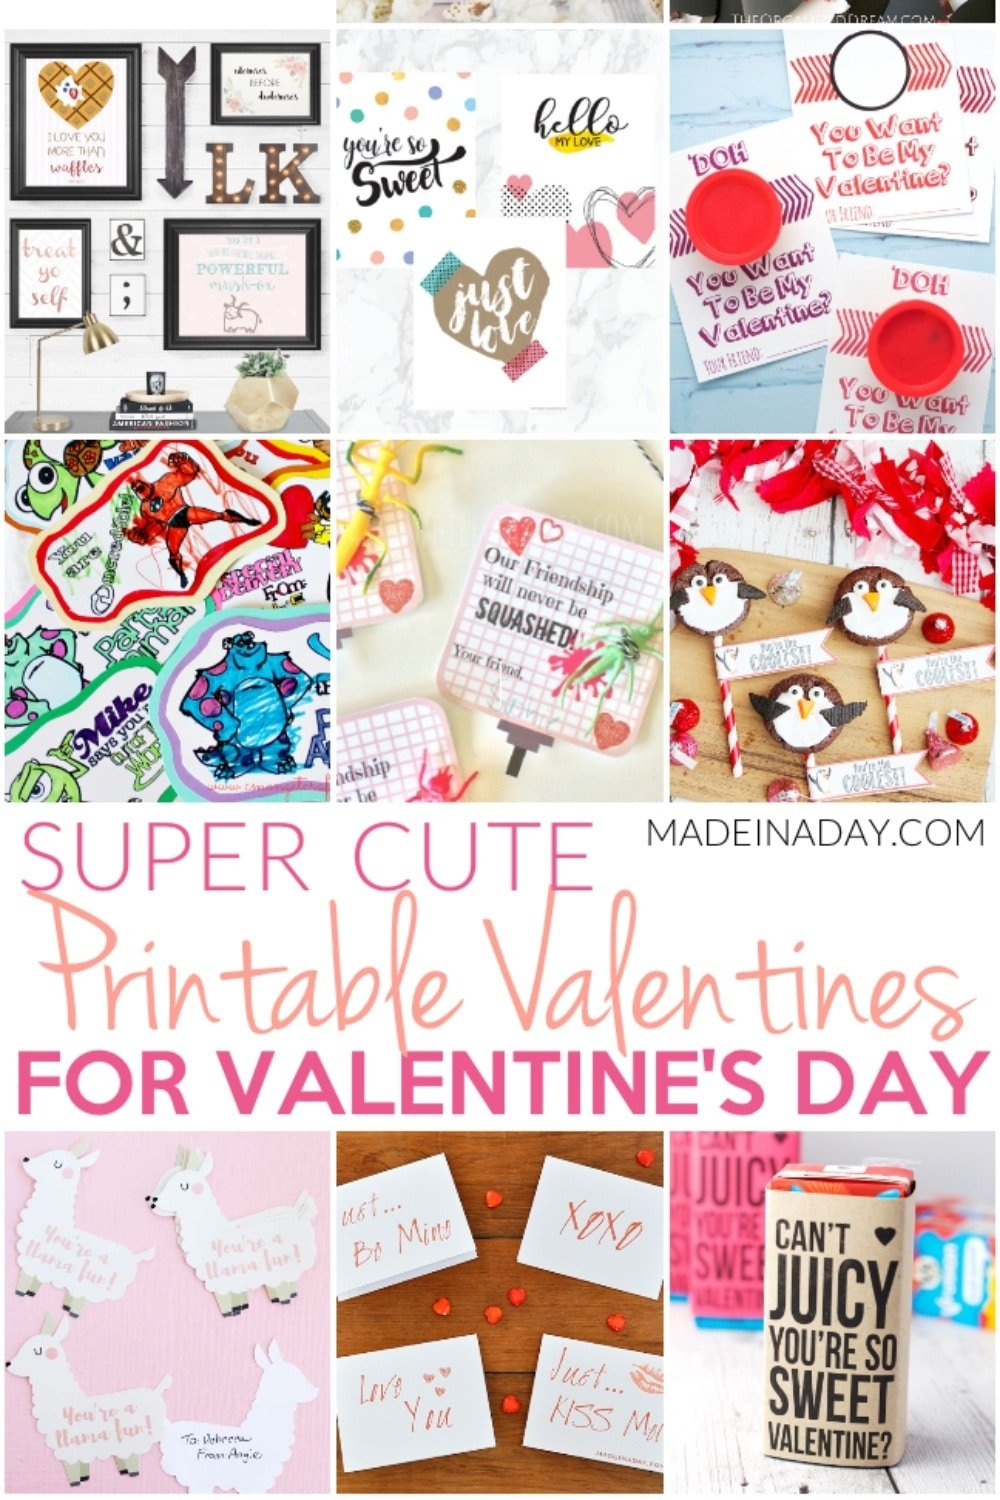 Super Cute Printable Valentines for Valentines Day